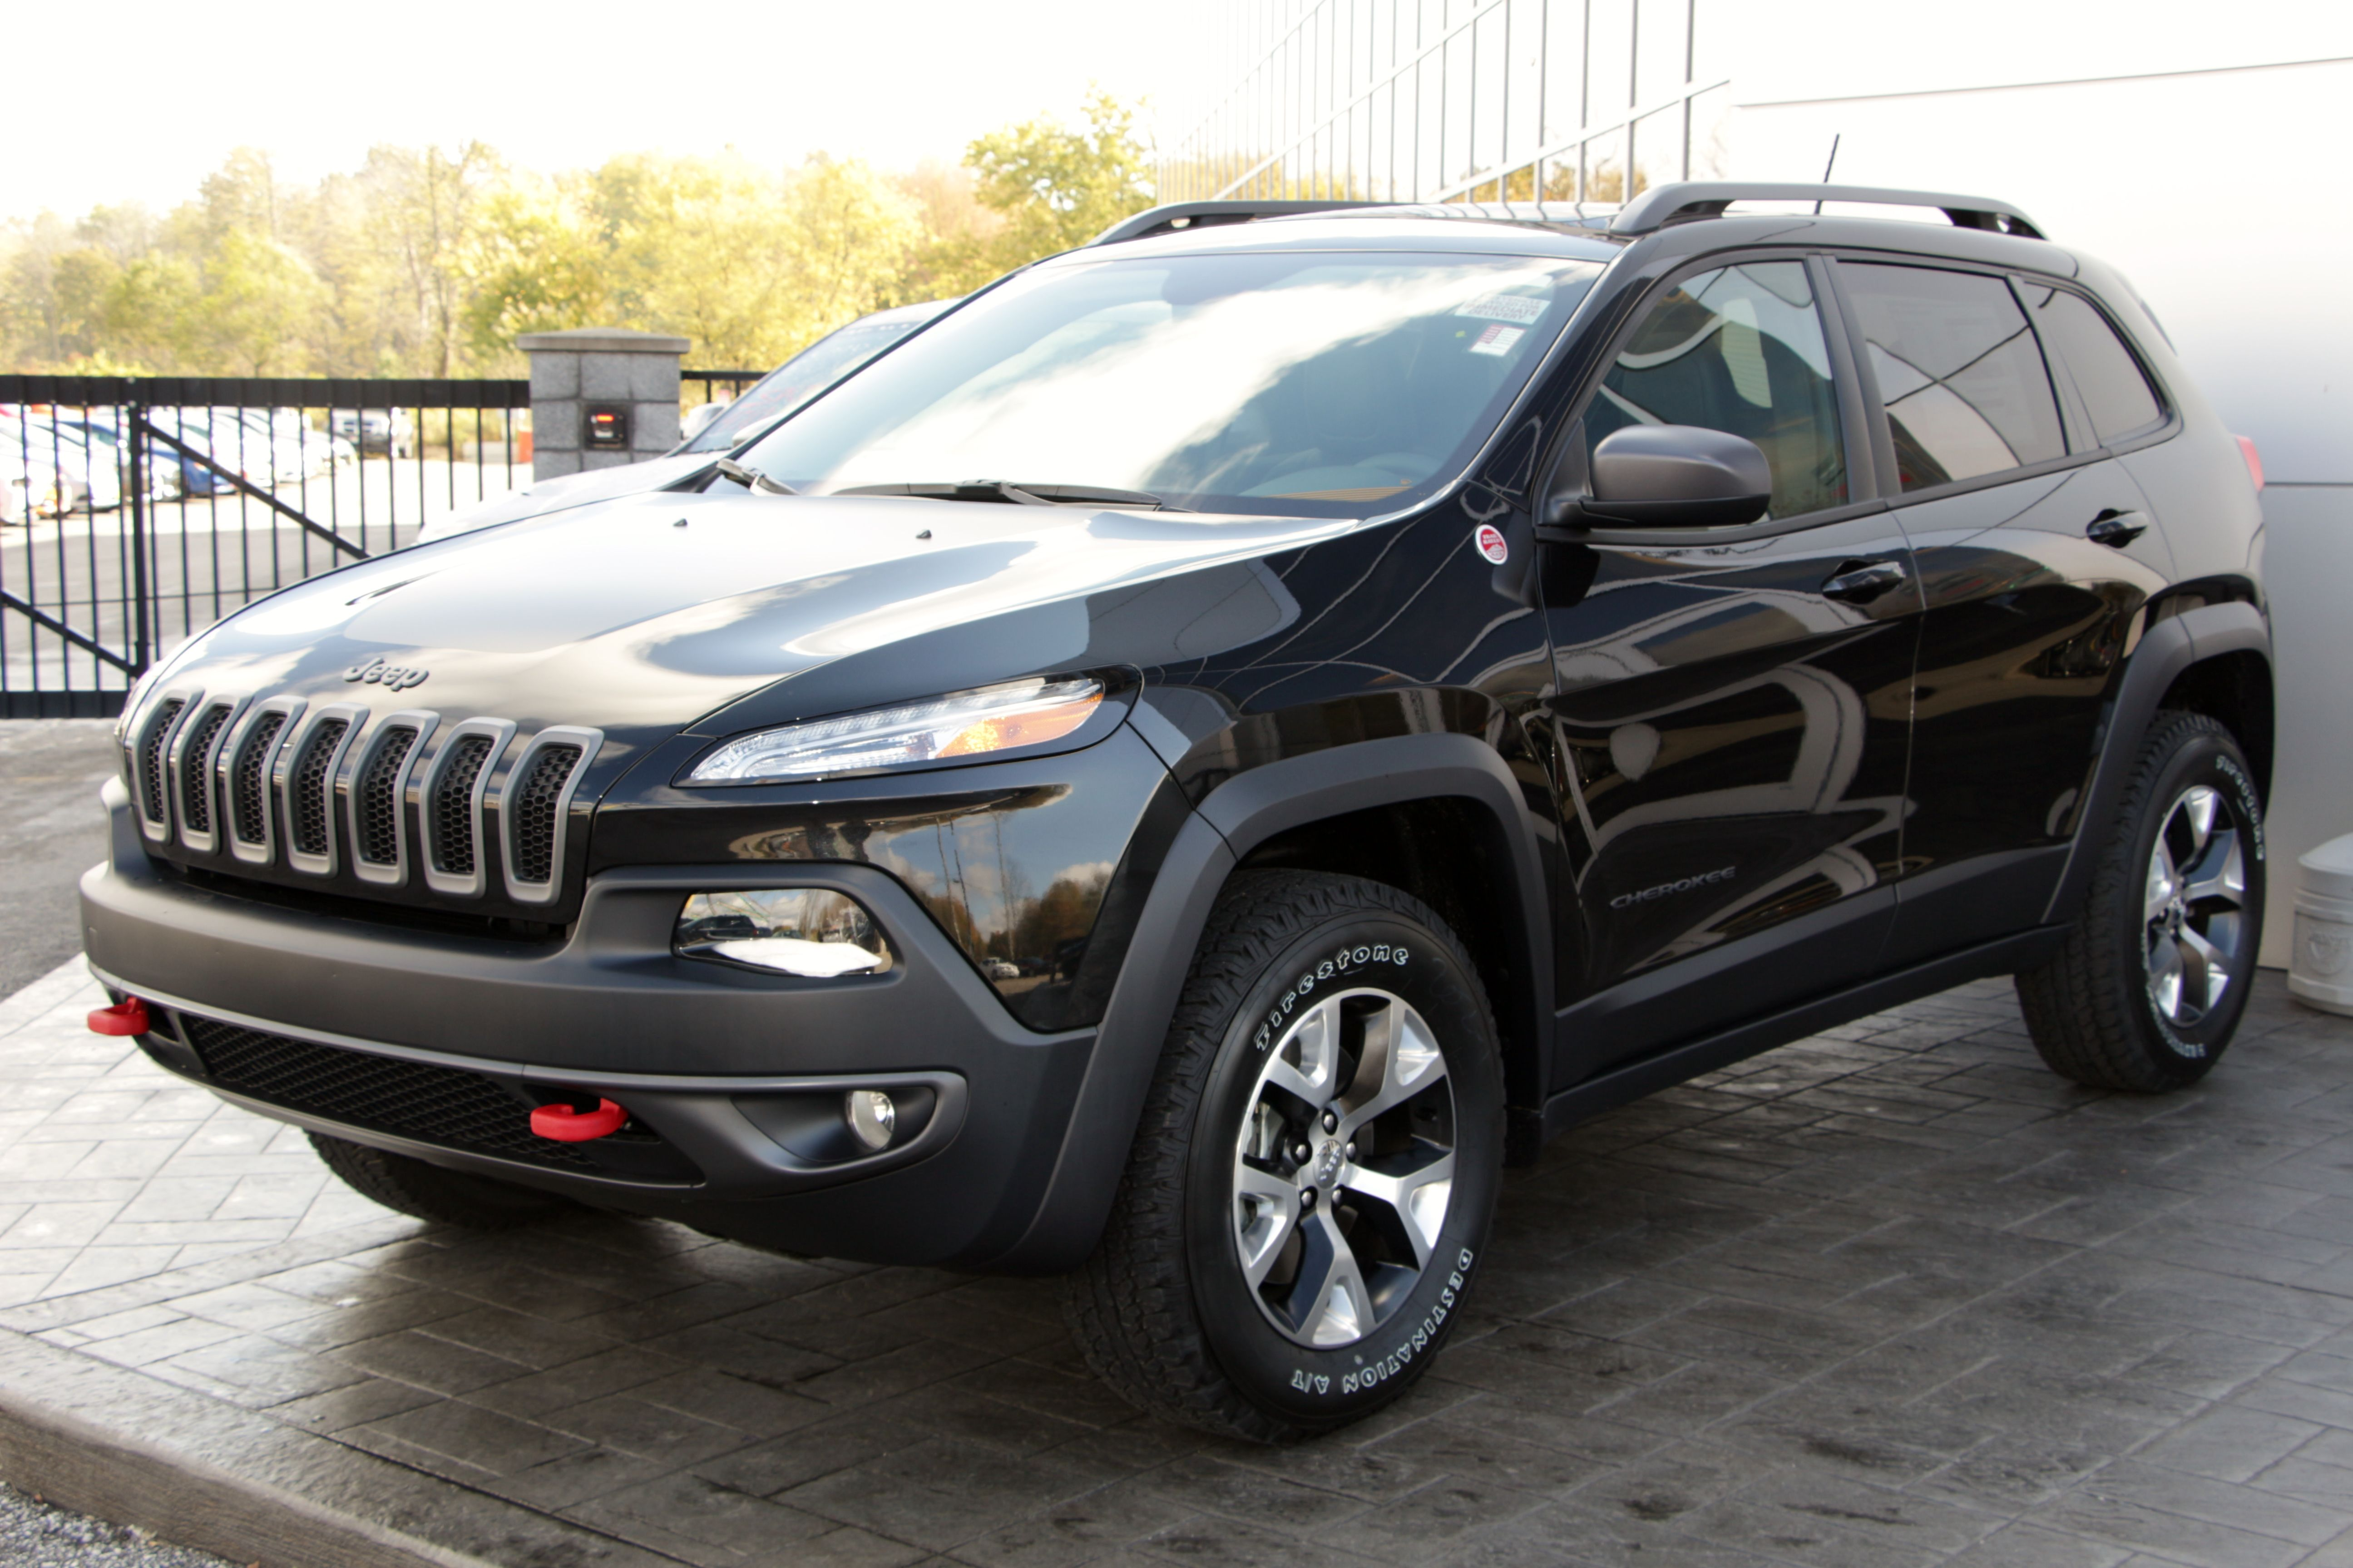 Trailhawk leather seats in the all new 2014 jeep cherokee 2014 jeep cherokee pinterest cherokee jeeps and dream cars